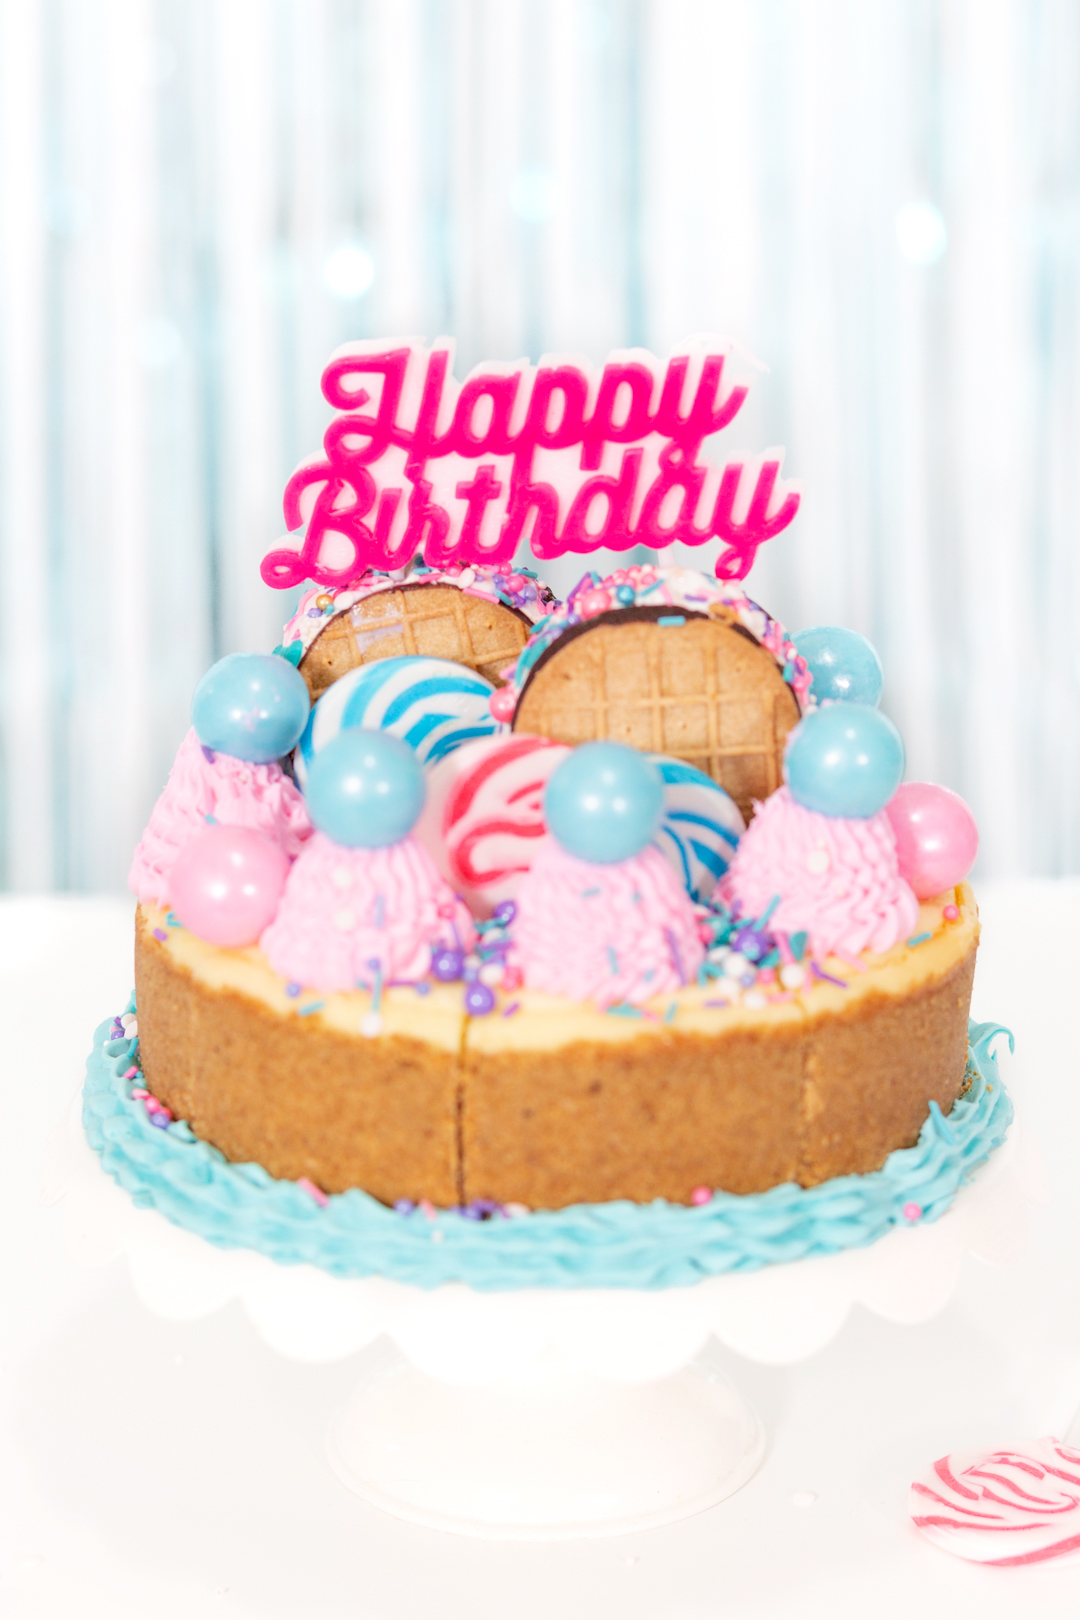 birthday cheesecake up close with pink and blue cake decorations